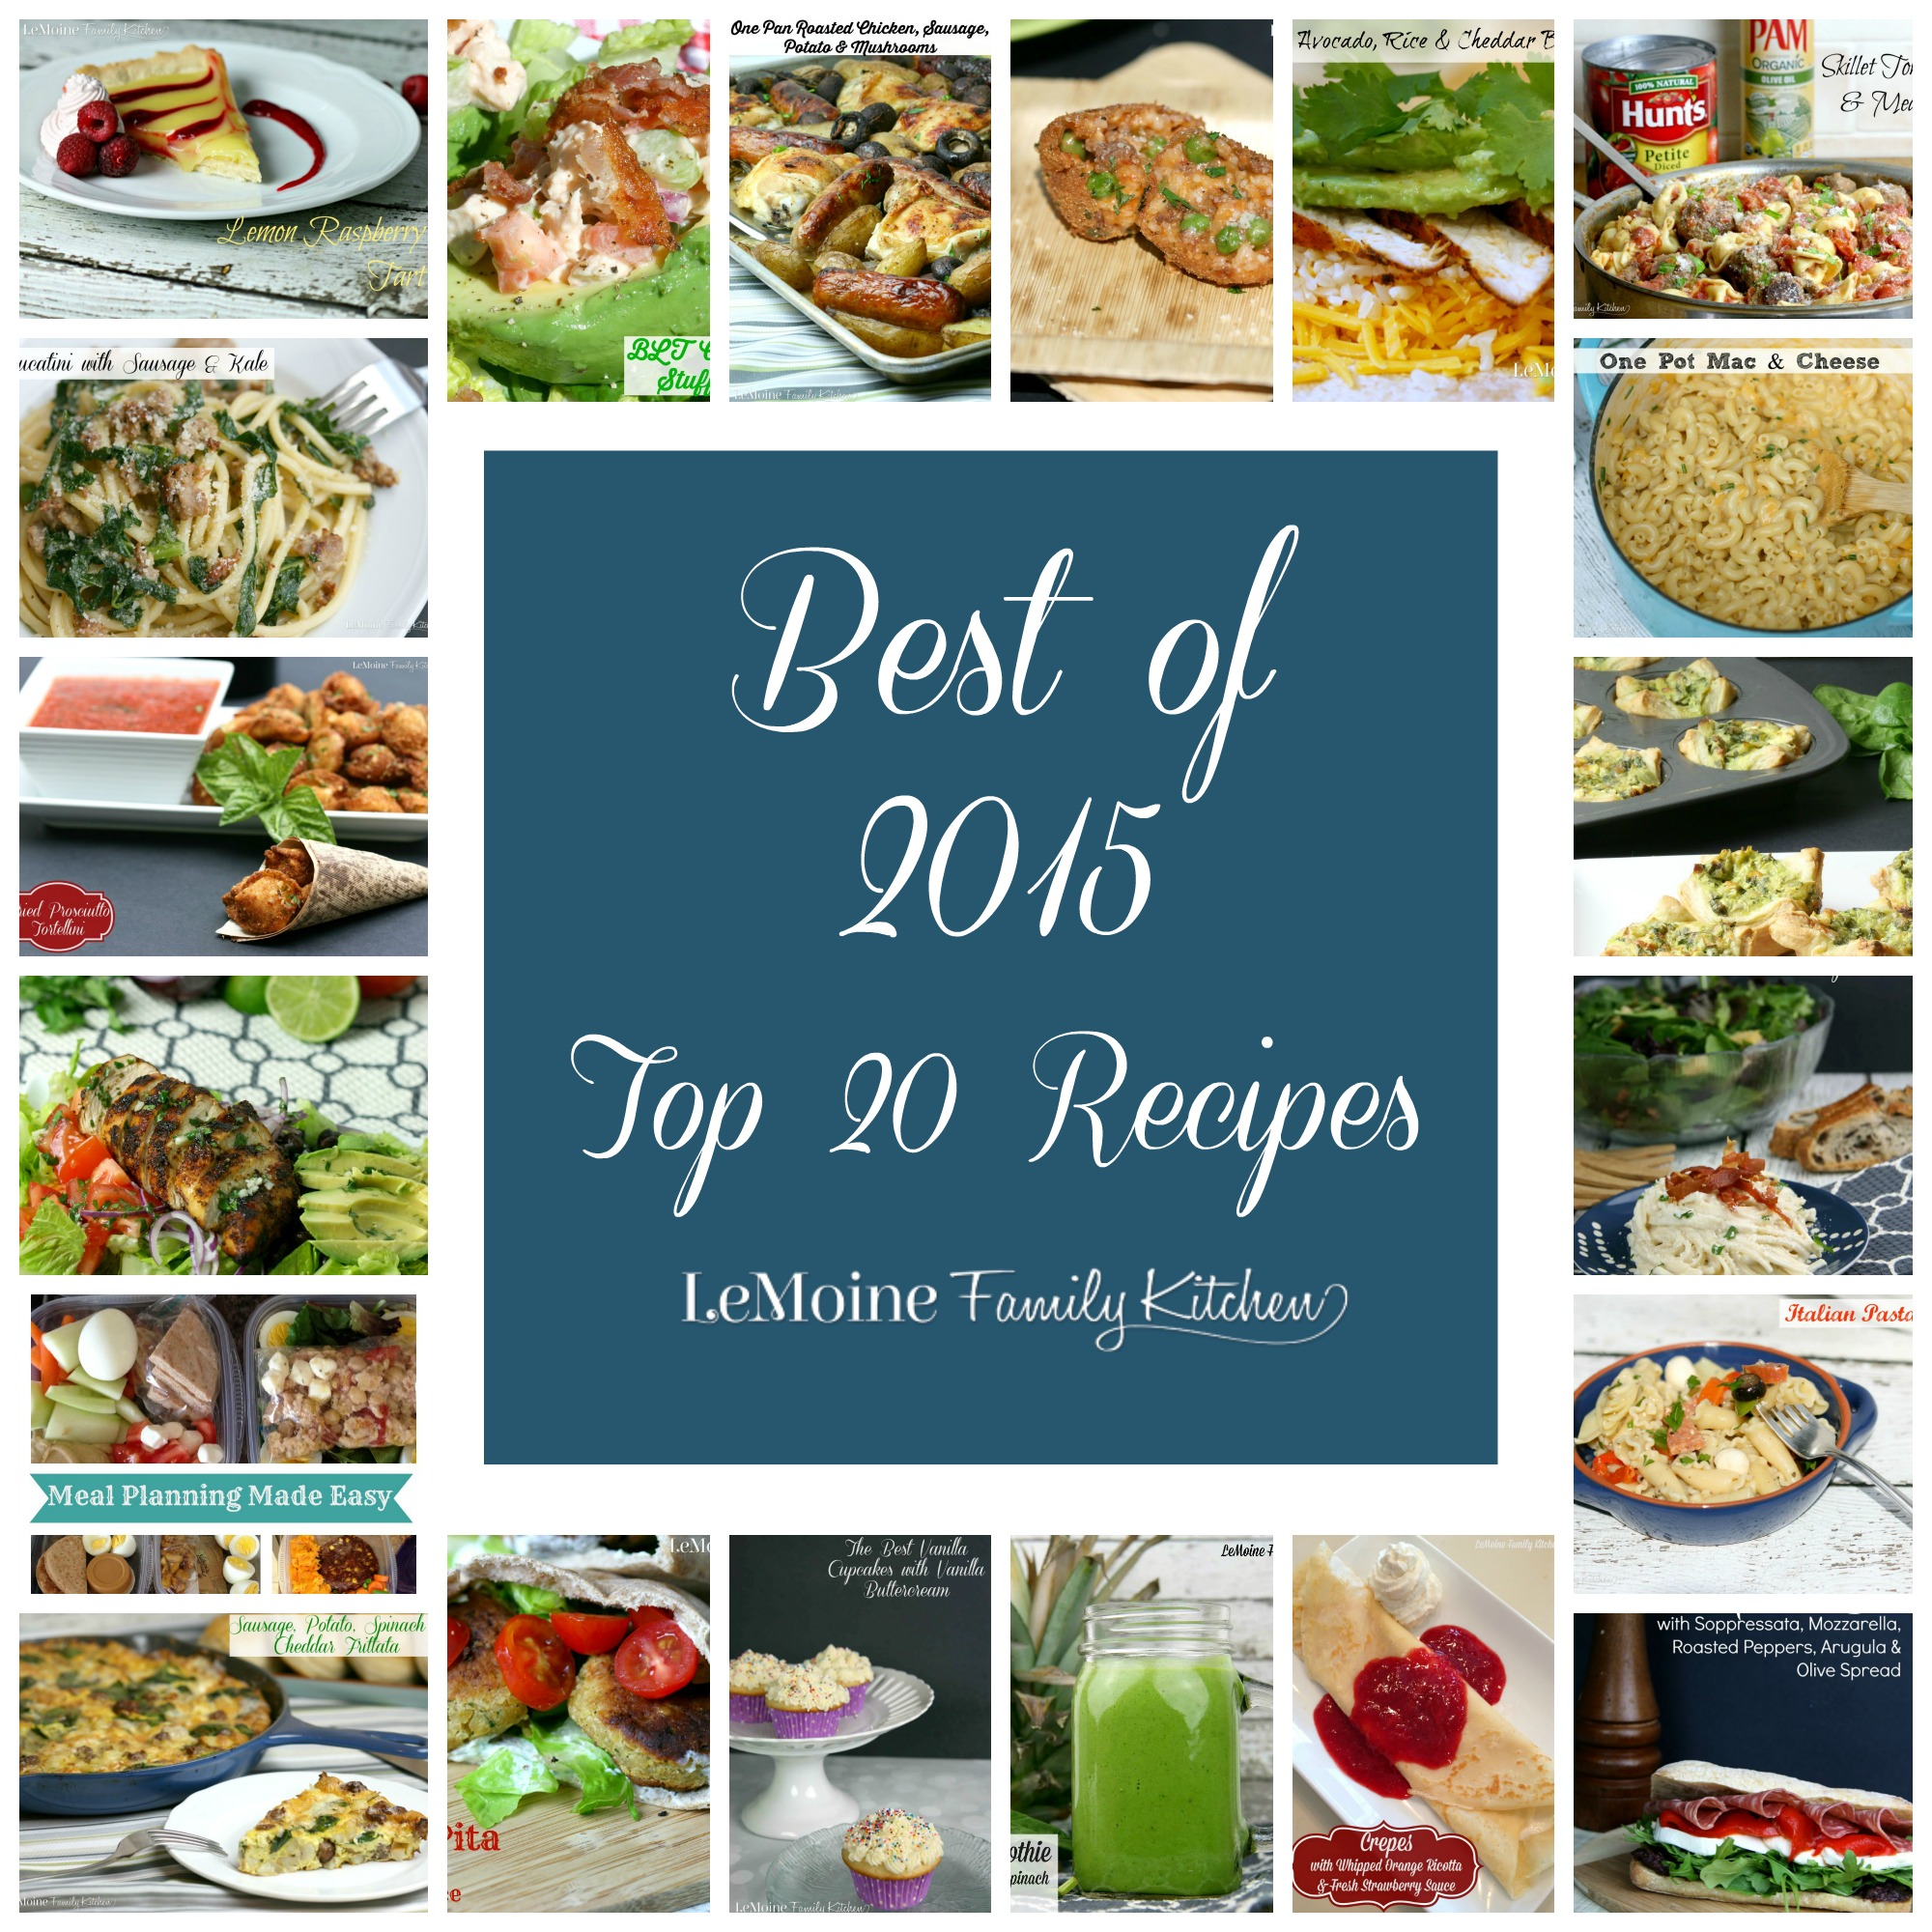 Best of 2015 {Top 20 Recipes}